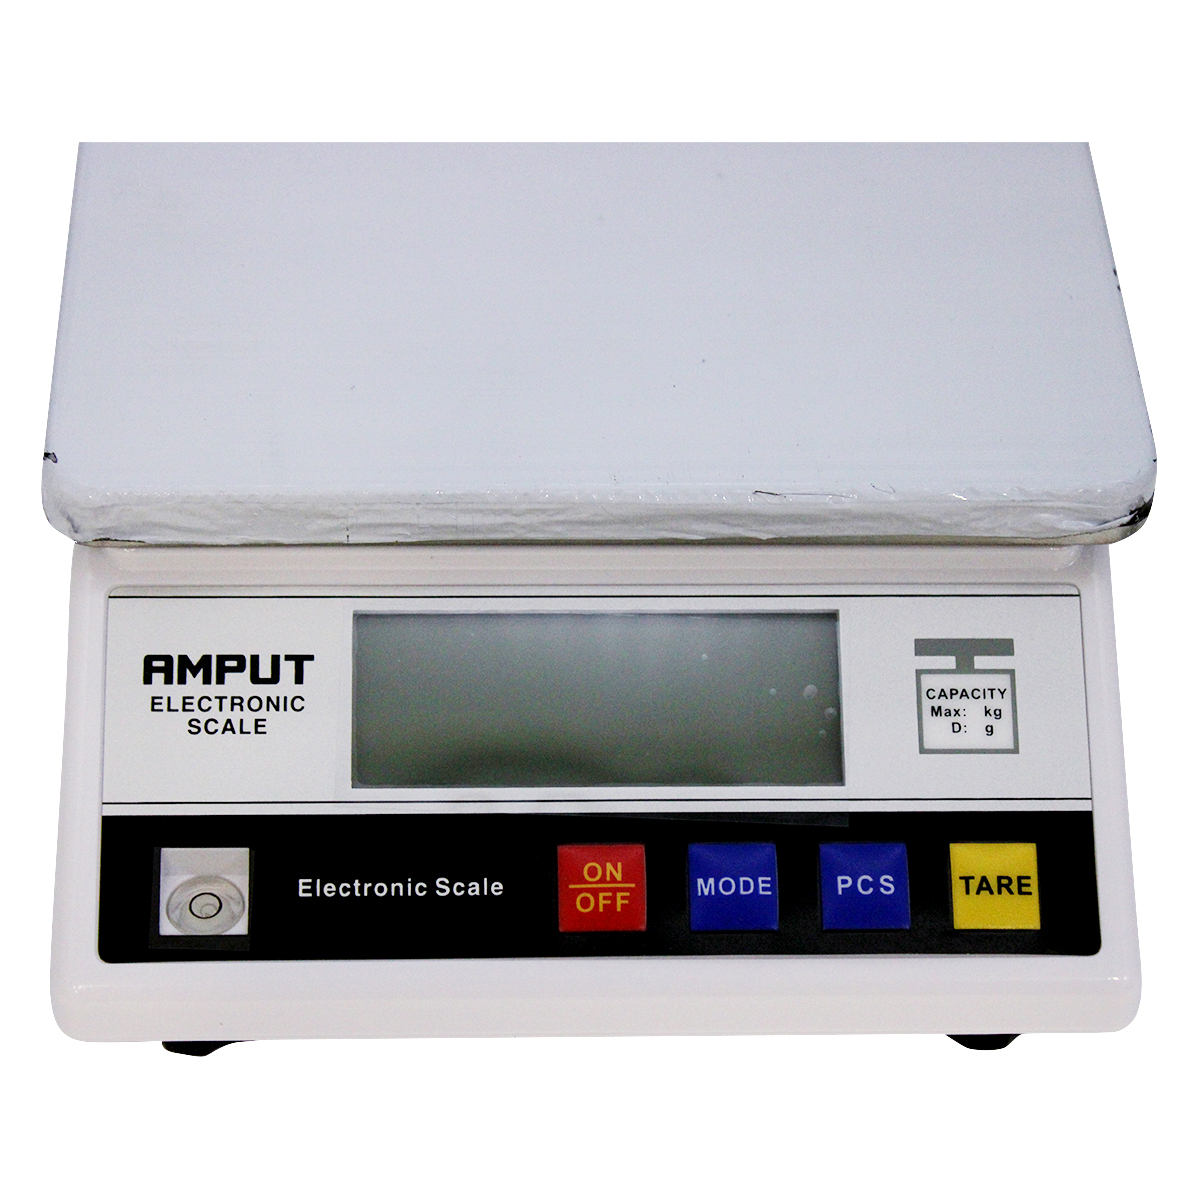 1g 0 Scale Table  Industrial Precision 10kg Laboratory Digital Counting X Balance Electronic Balance Top Scale W Weighing